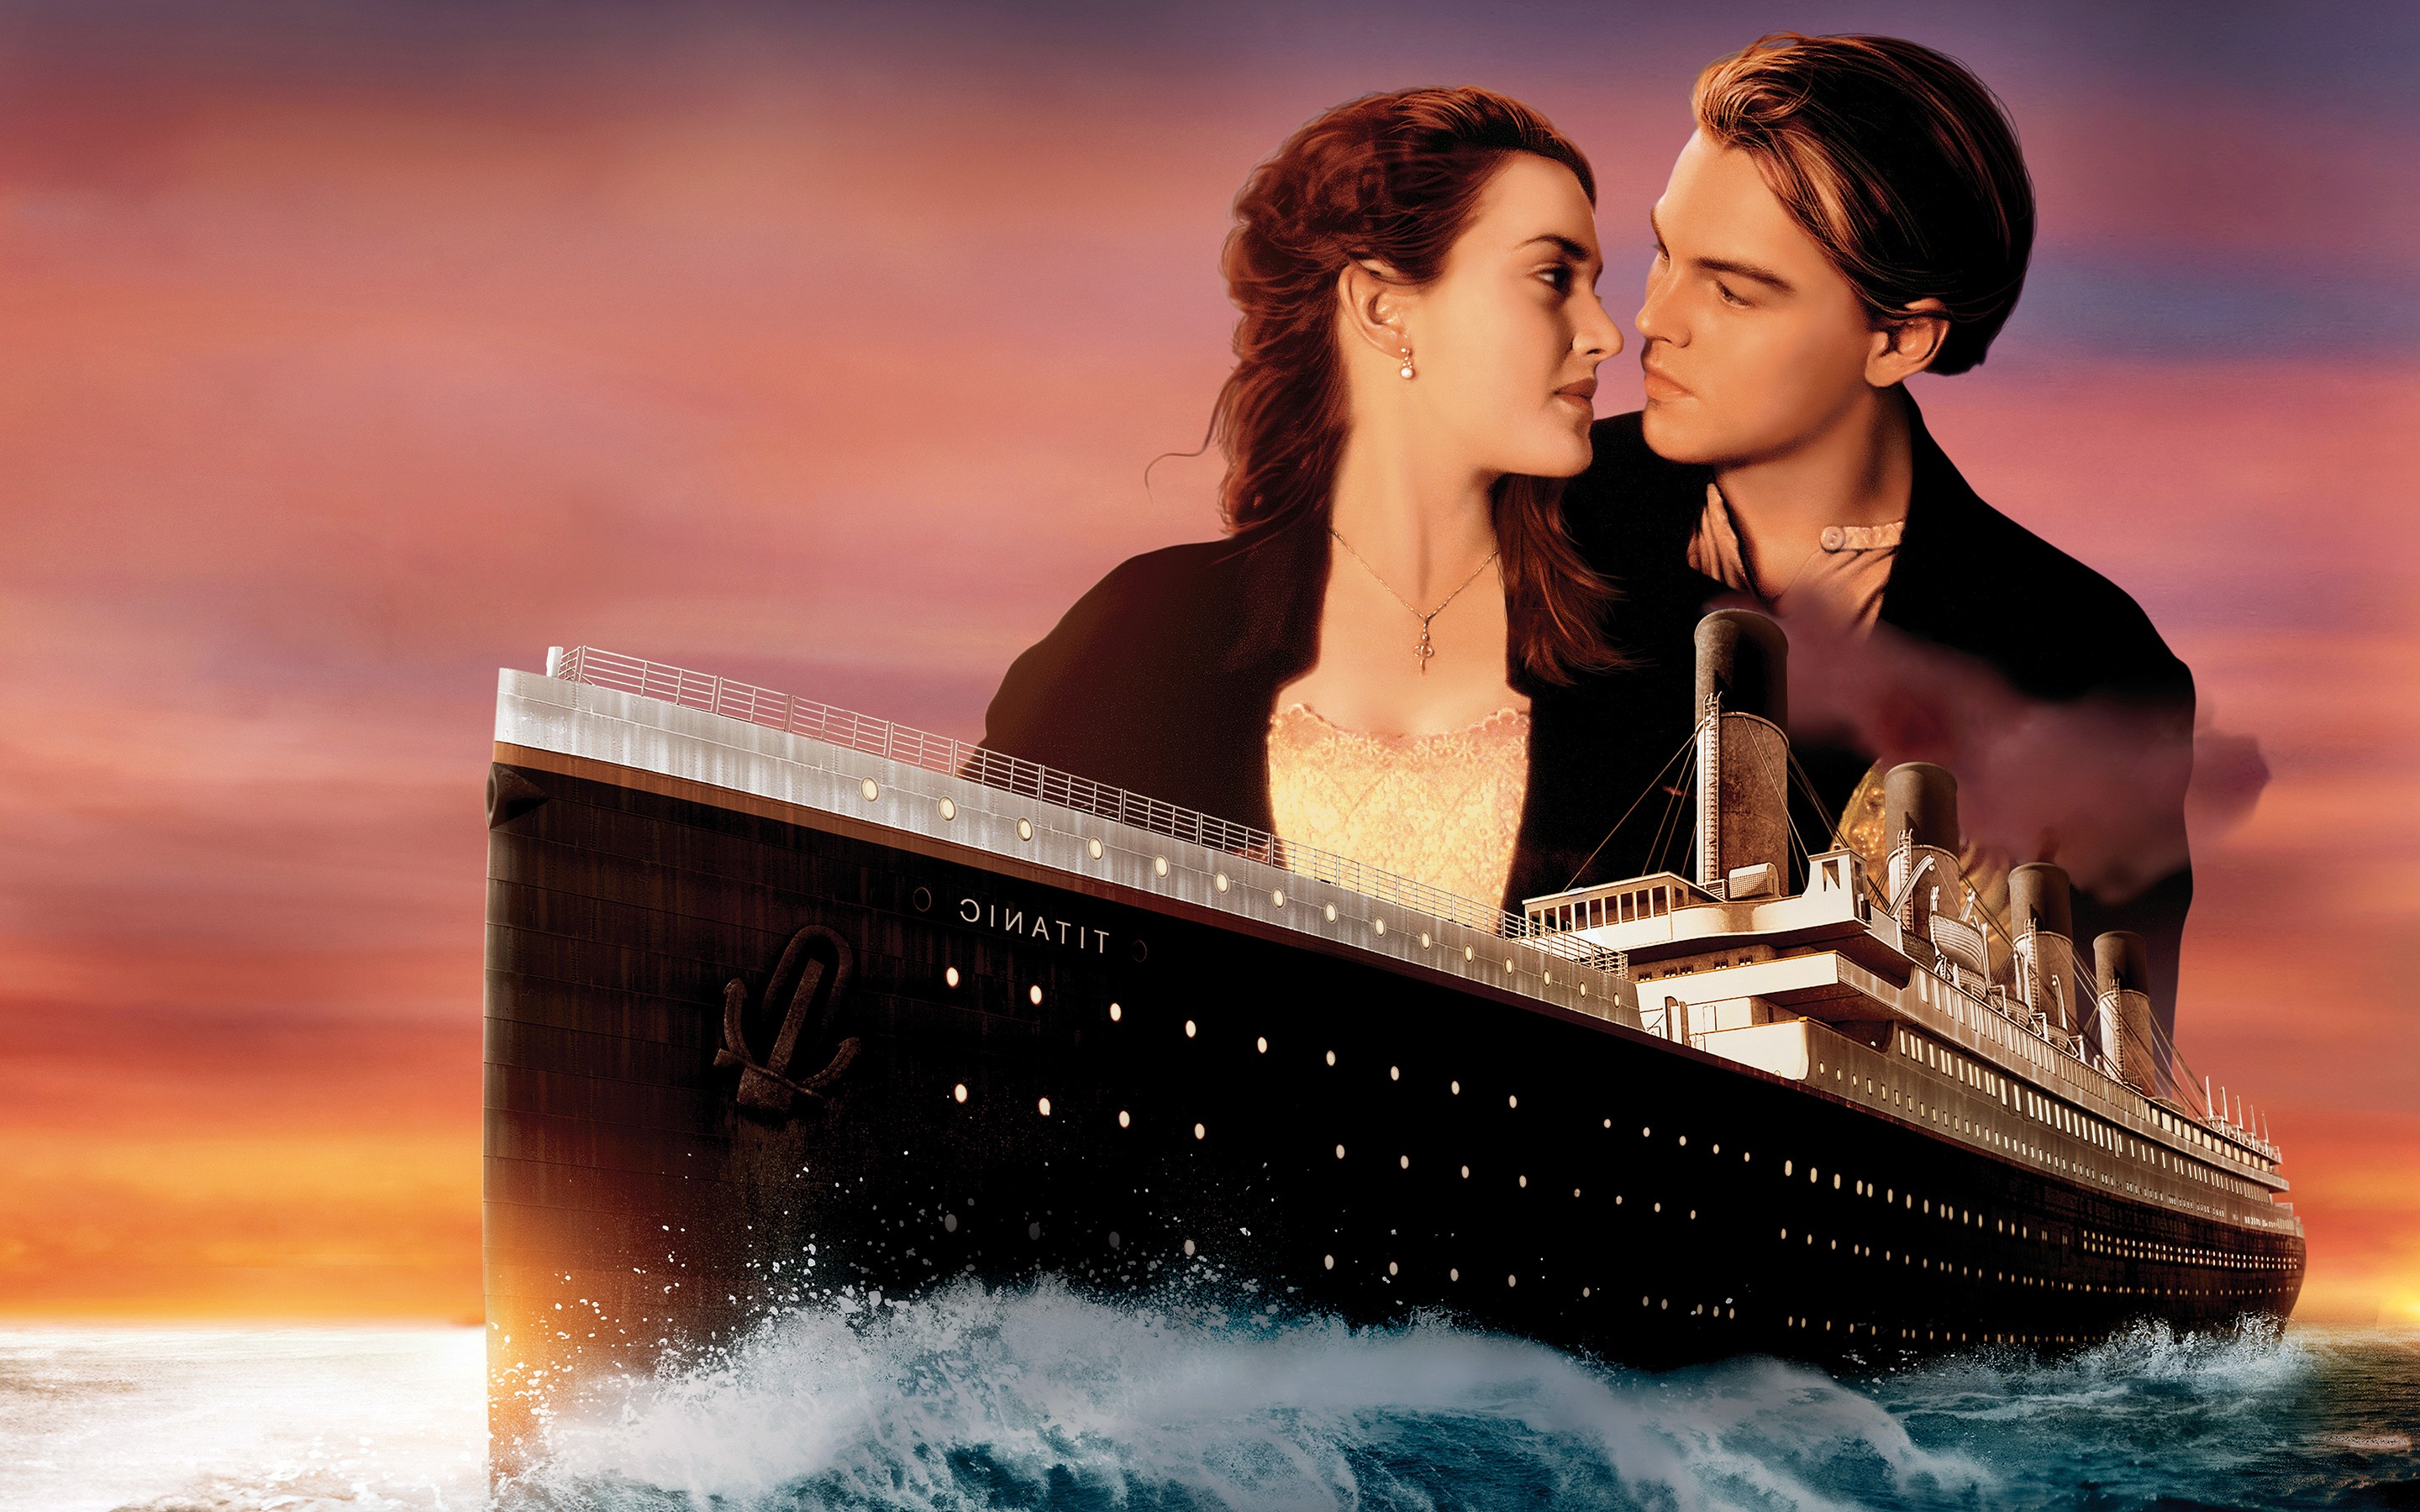 2048x1152 titanic movie full hd 2048x1152 resolution hd 4k